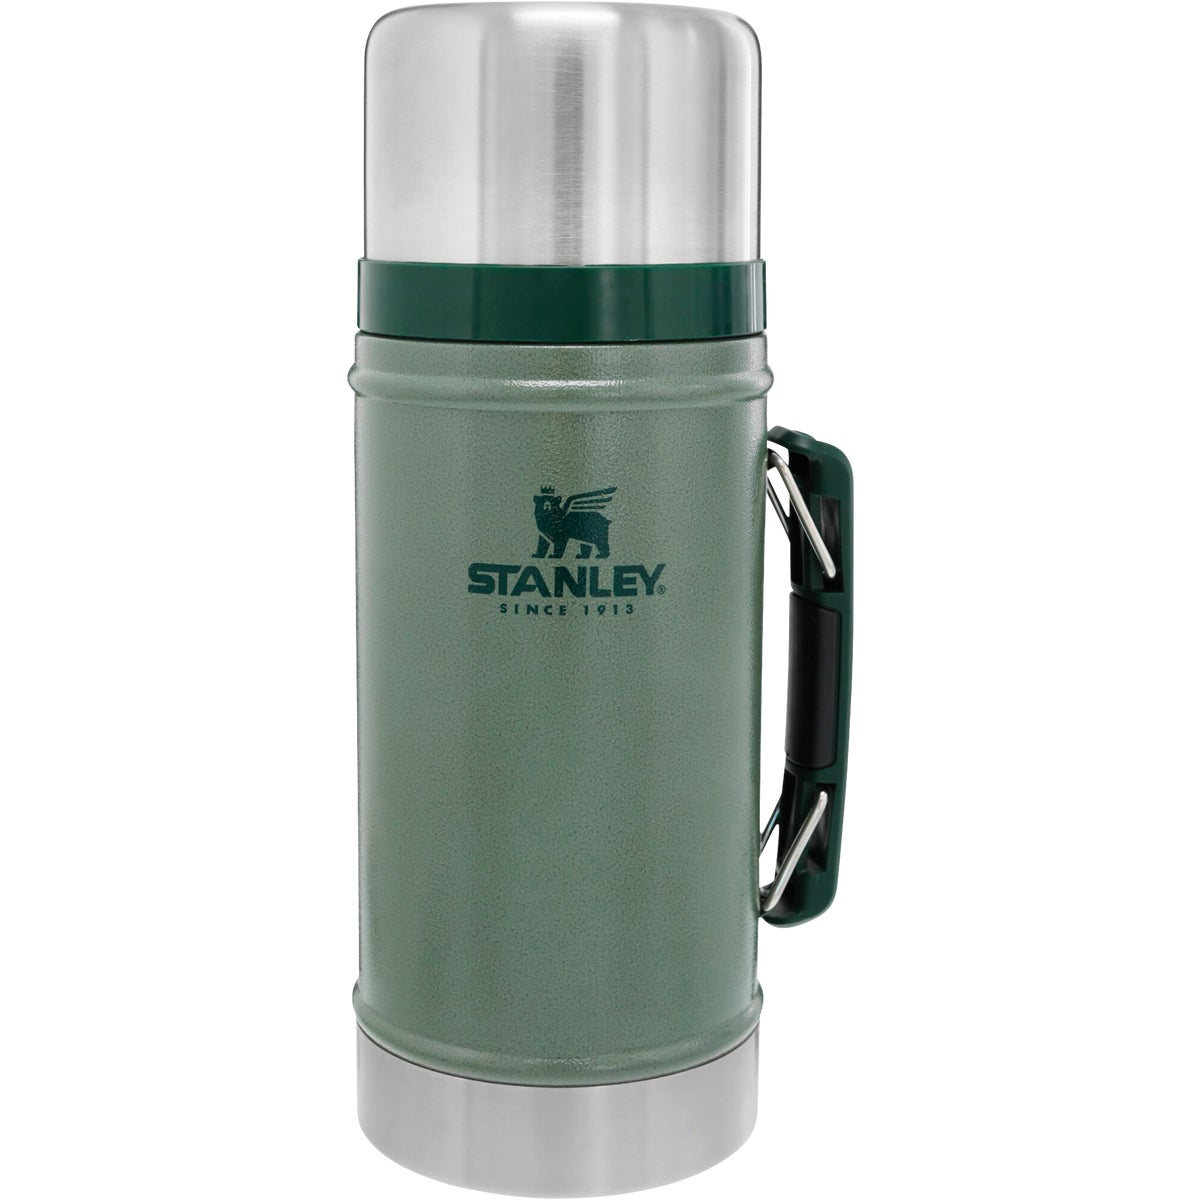 STANLEY 24OZ FOOD JAR